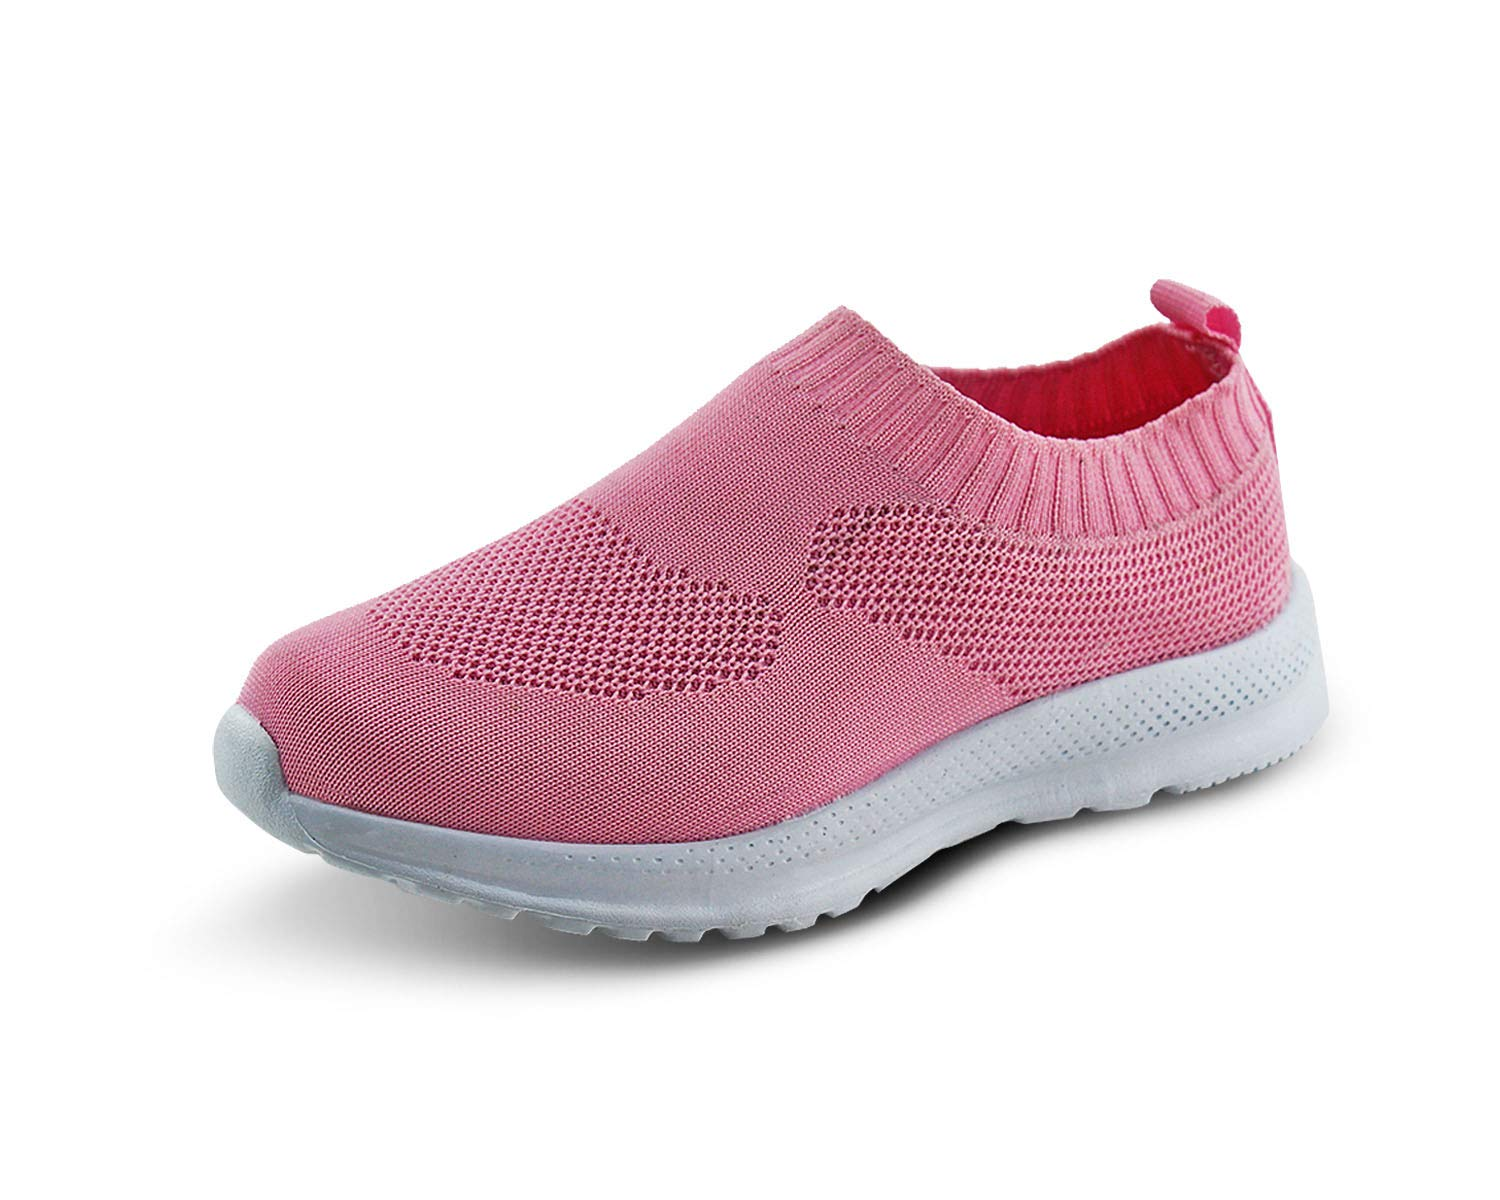 Jabasic Kids Lightweight Knit Shoes Boys Girls Slip On Walking Sneakers(3.5,Pink)